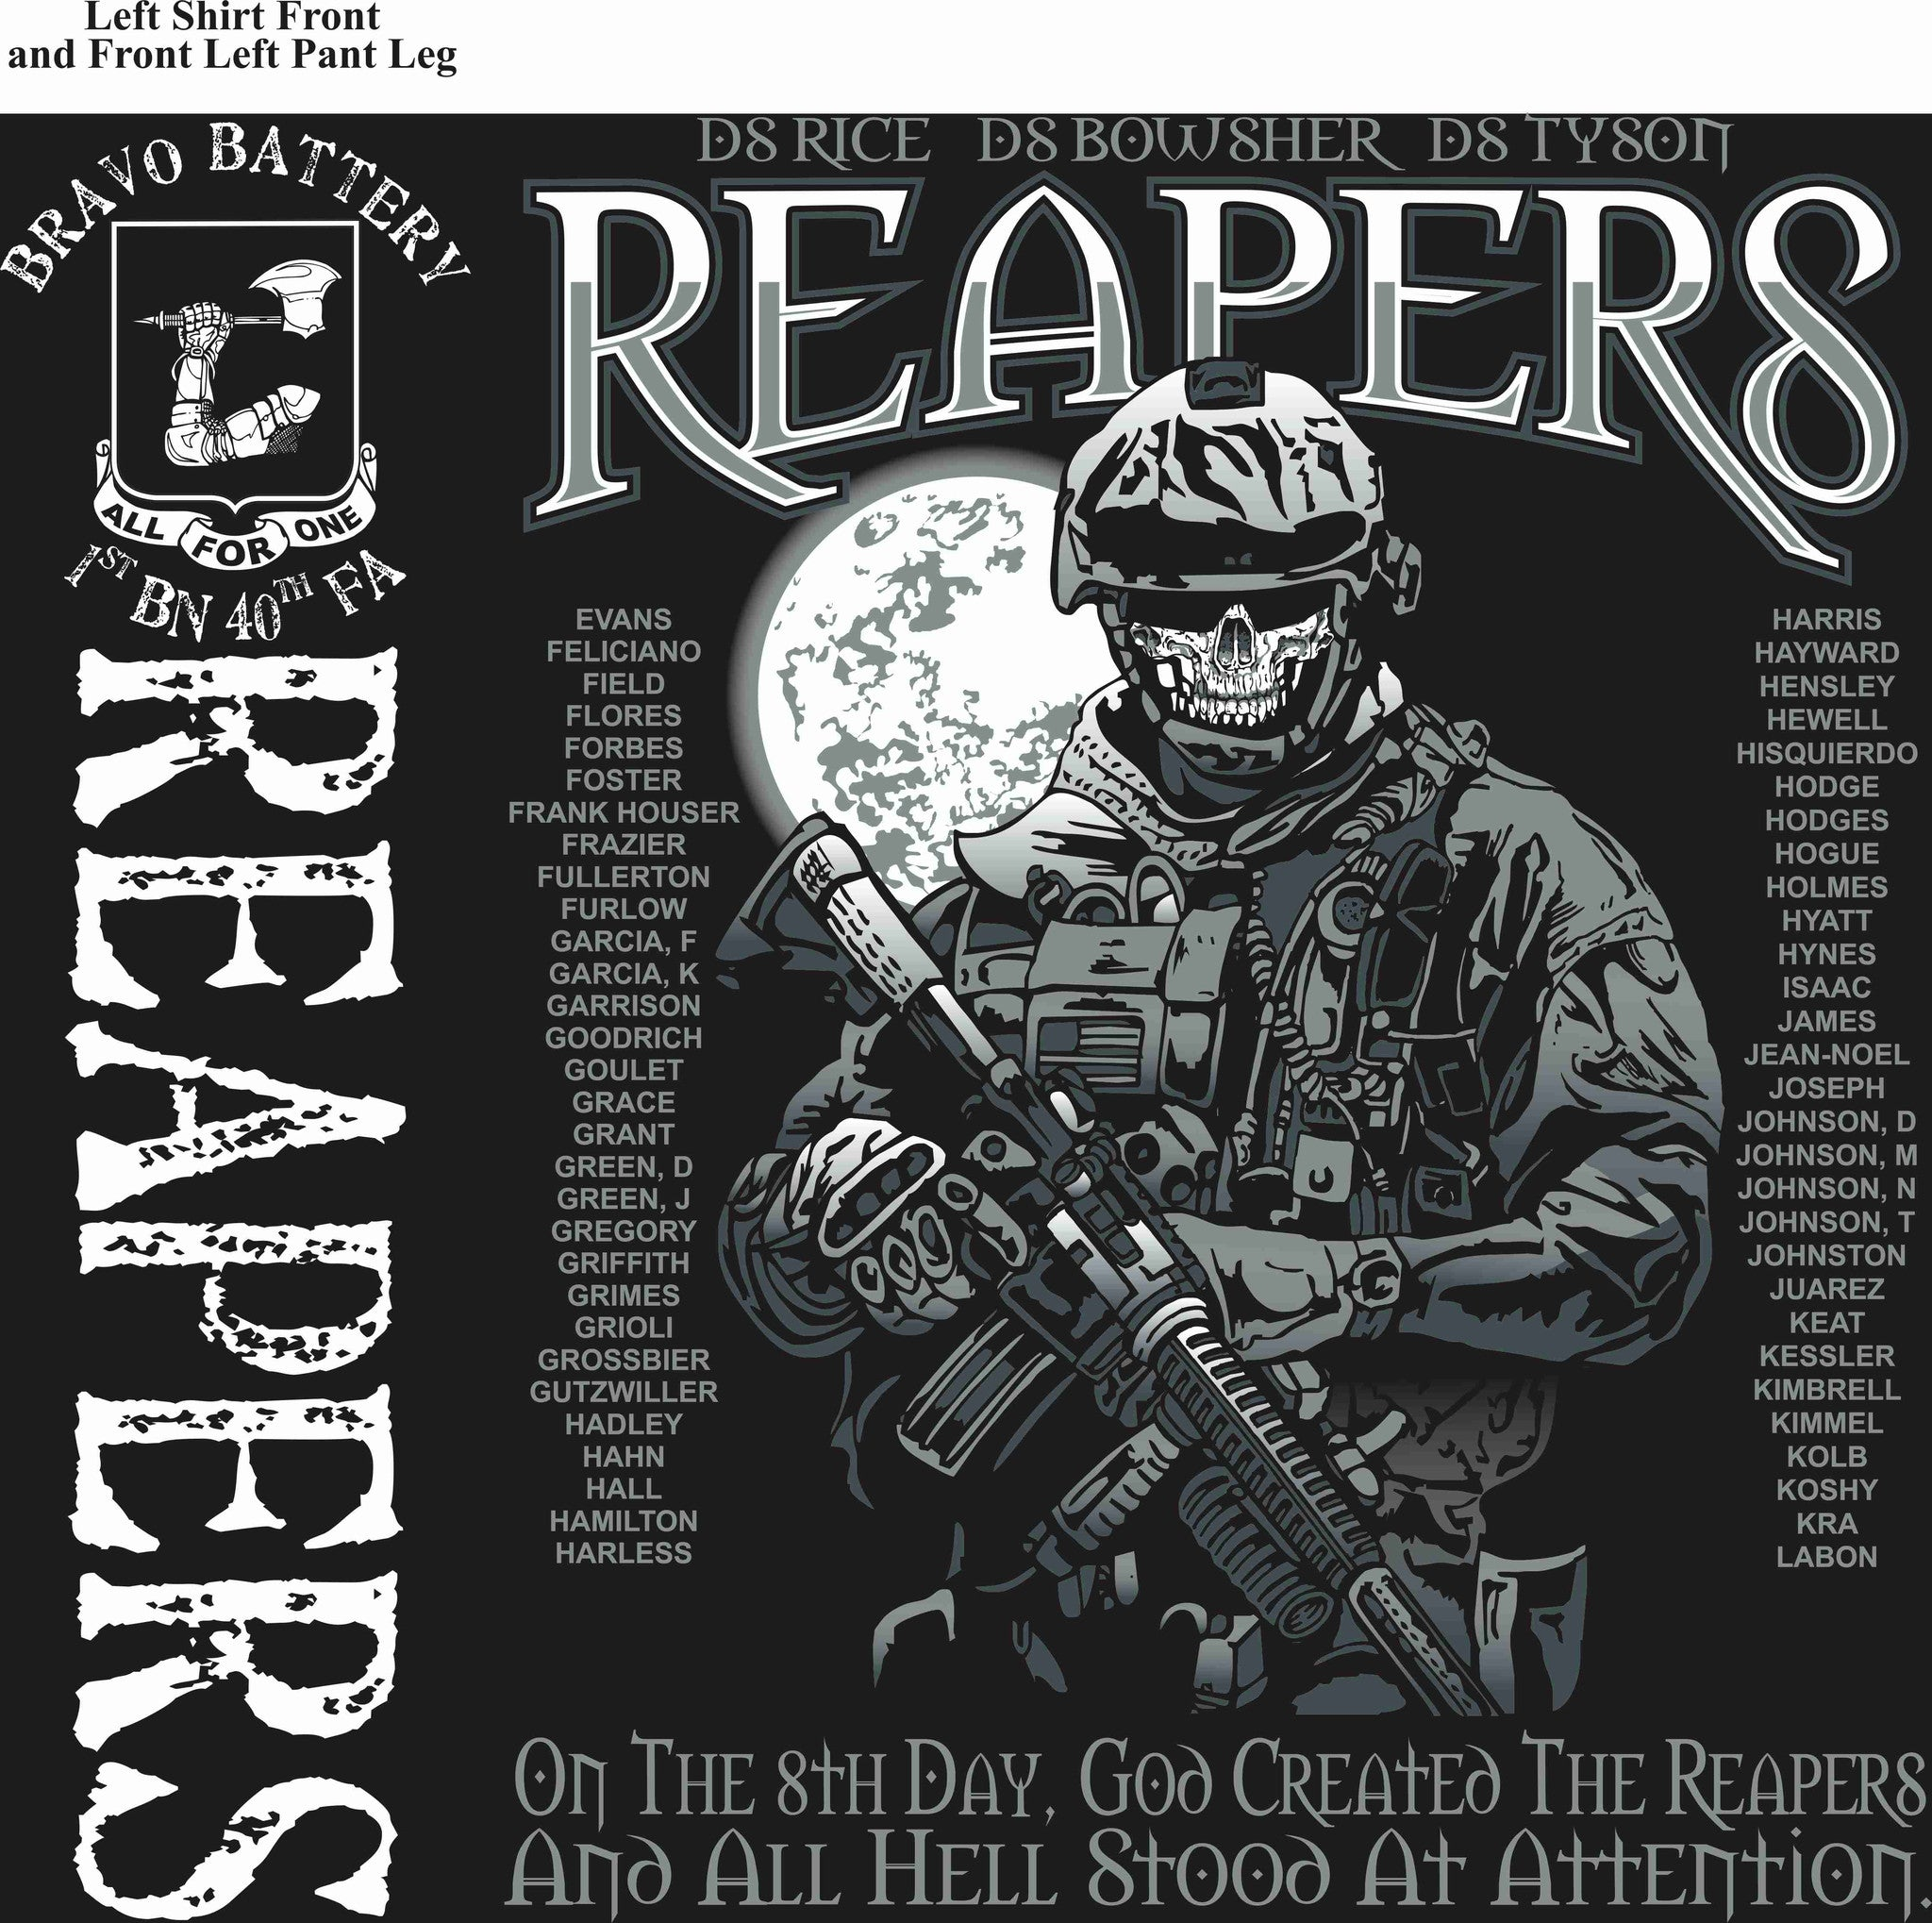 Platoon Shirts BRAVO 1st 40th REAPERS SEPT 2015